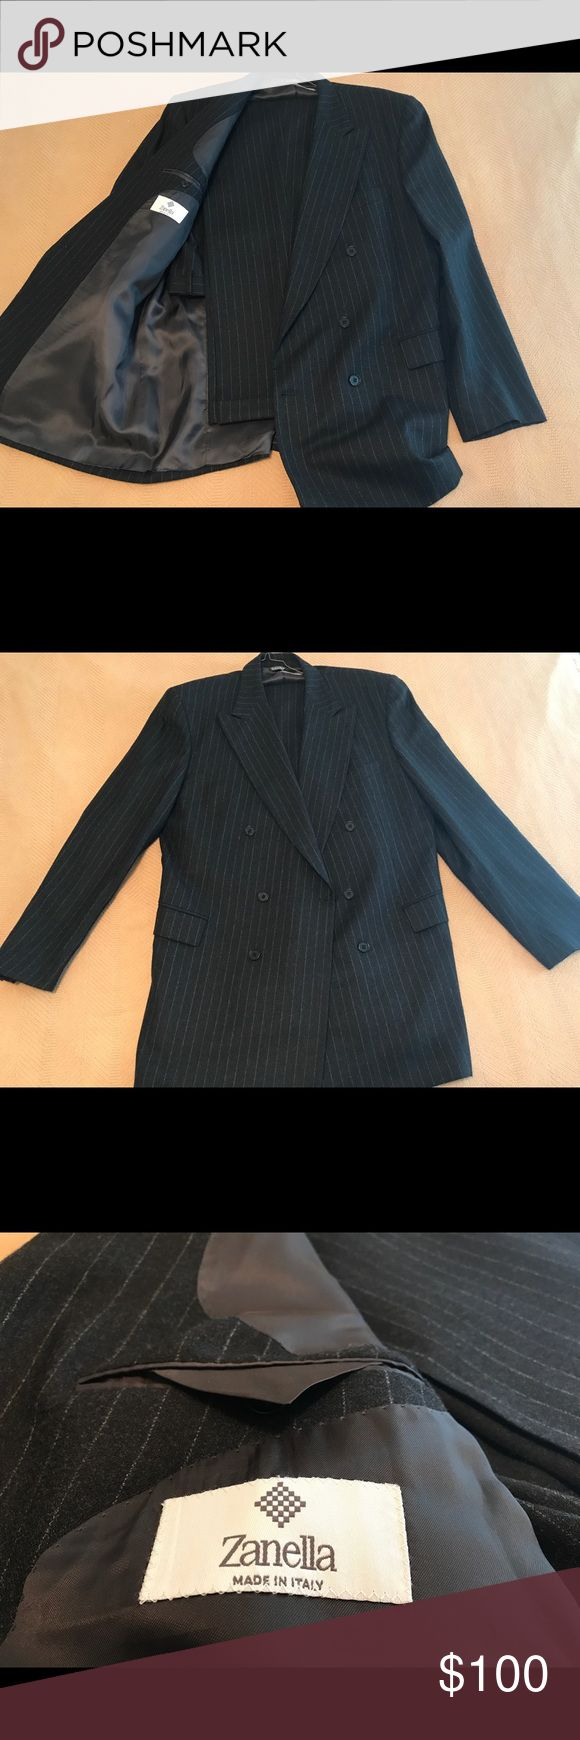 Like new Zanella suit price reduced This high quality Italian made suit will make you look and feel like a winner. The 100% wool fabric is incredibly soft and along with the legendary Italian craftsmanship makes this suit the perfect investment for your professional wardrobe. Both the trousers and jacket are in like new condition with no defects. Cross posted, own this luxury Italian suit while it's here!   Measurements:  Jacket,  44L Trousers,  inseam 32 Outseam 44 Waist 38 Zanella Suits…